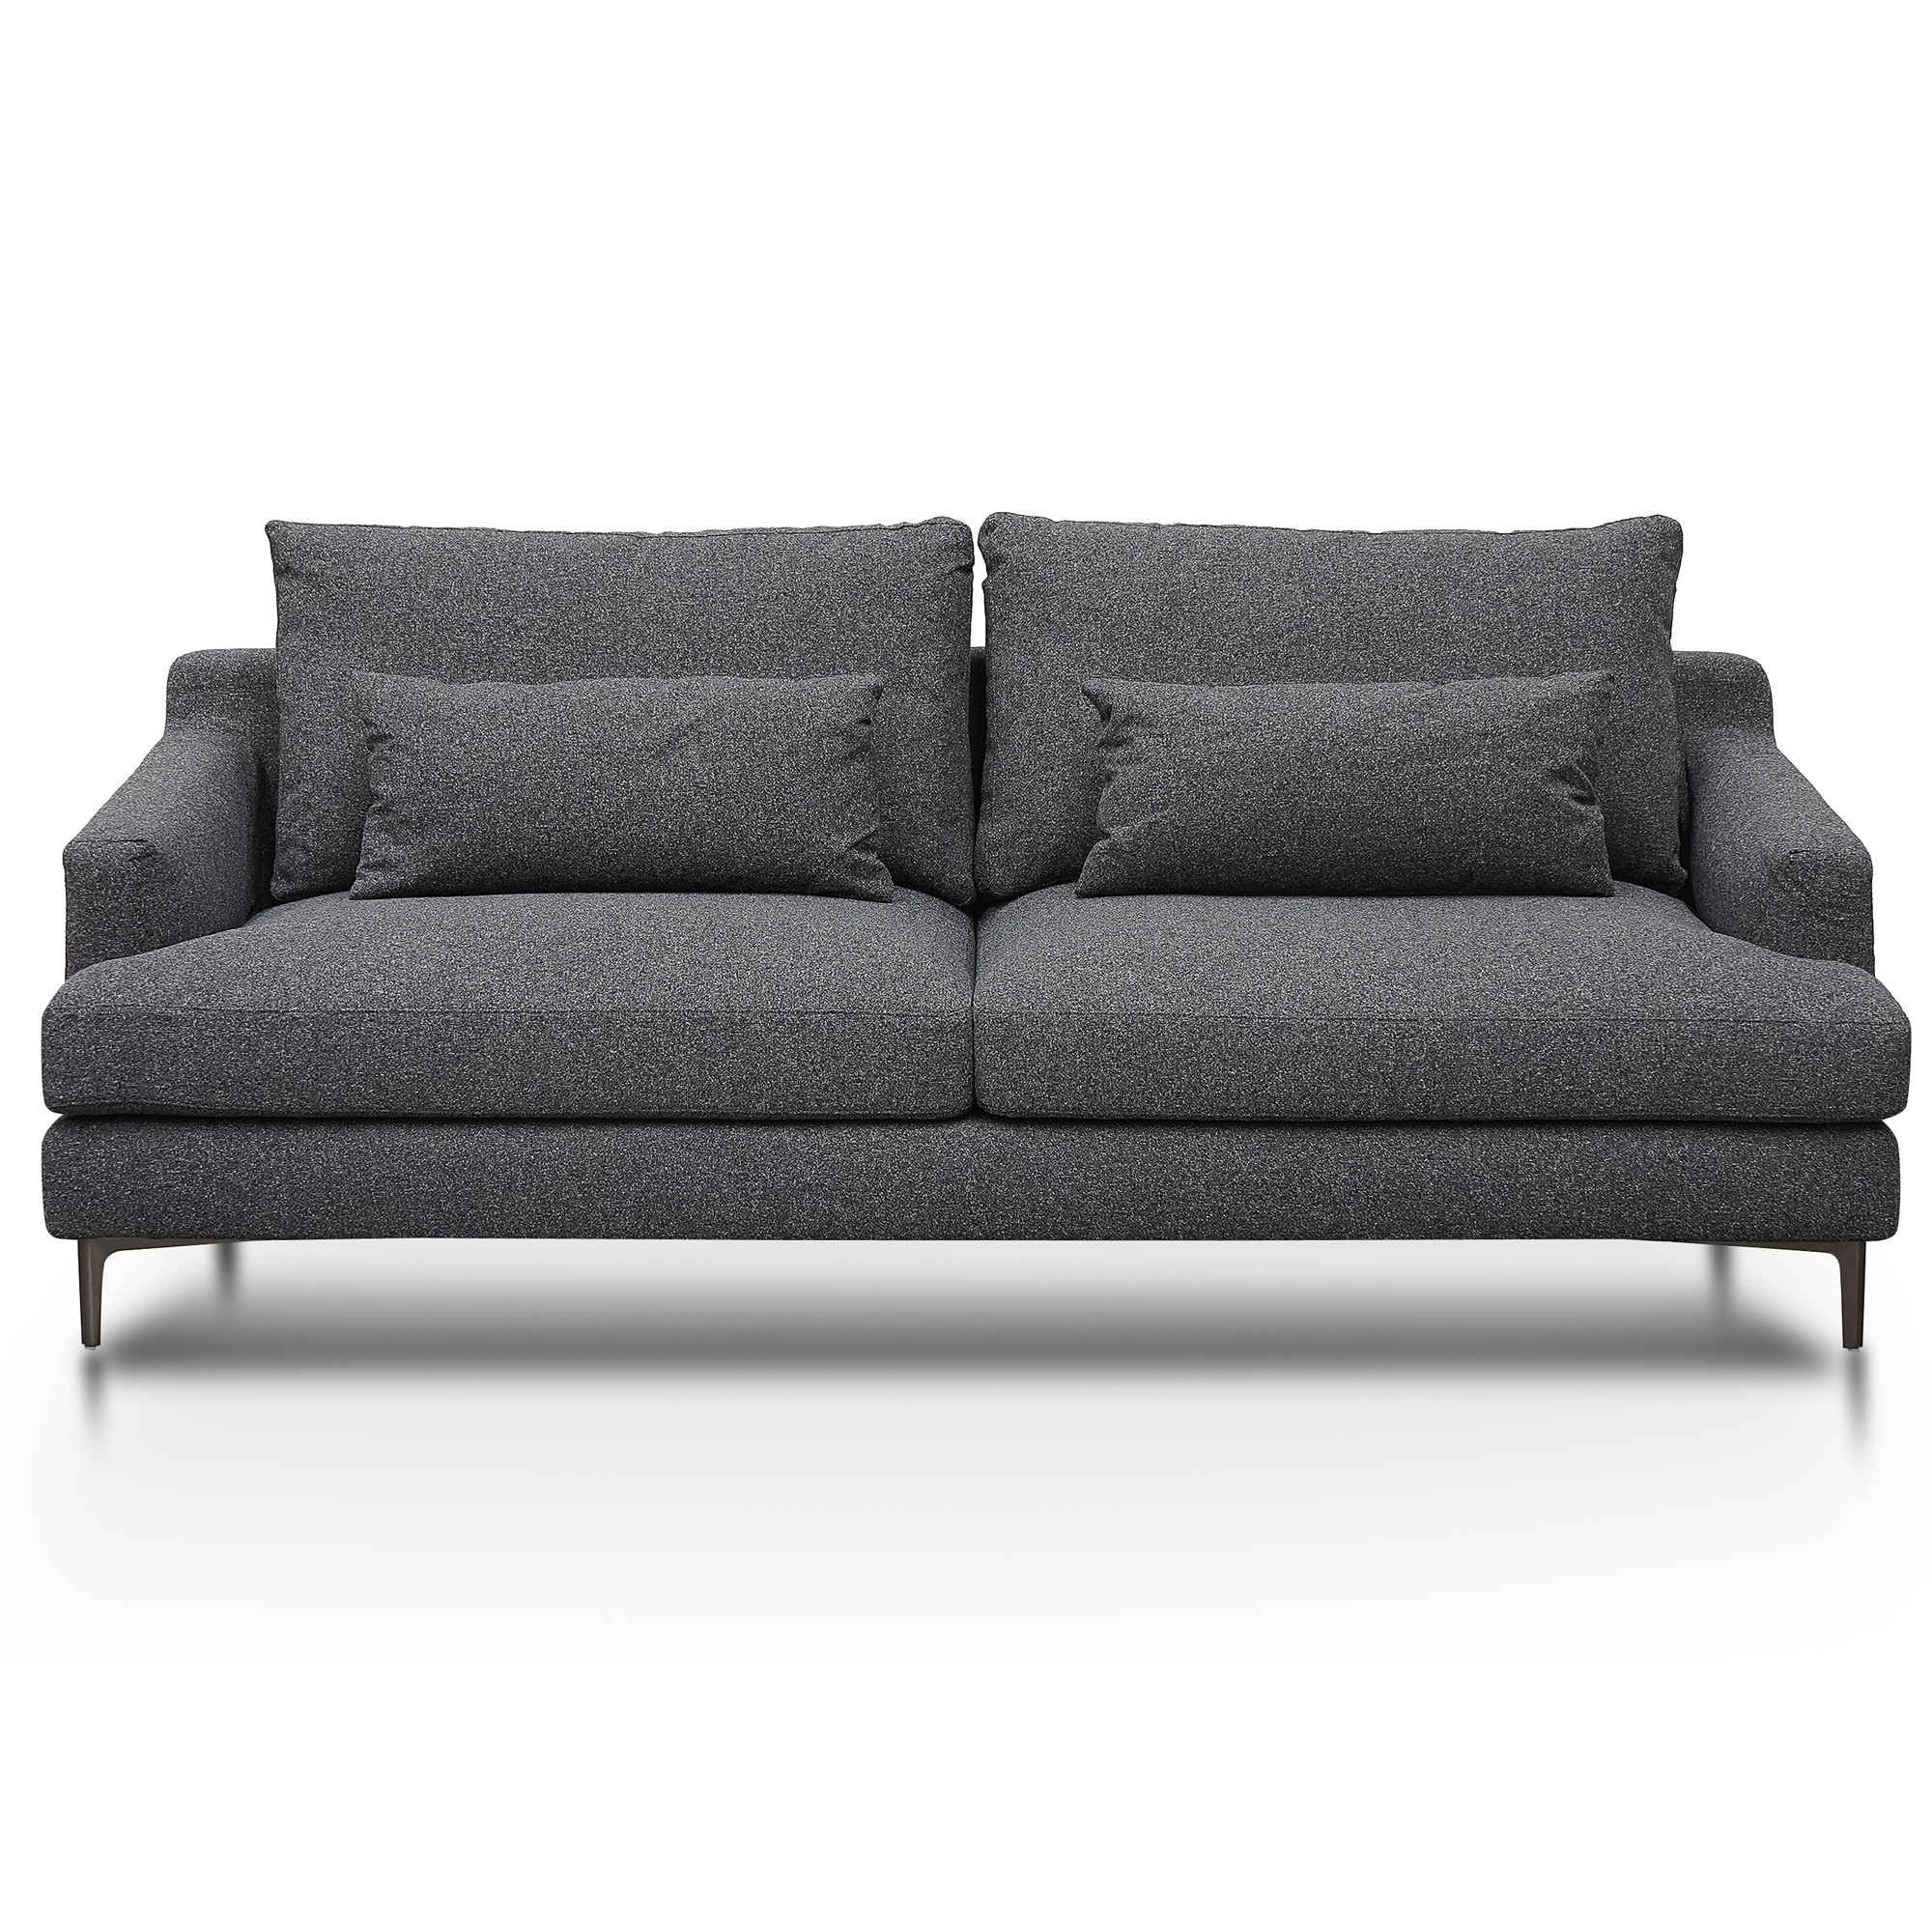 Bennett Fabric Sofa, 3 Seater, Dark Grey